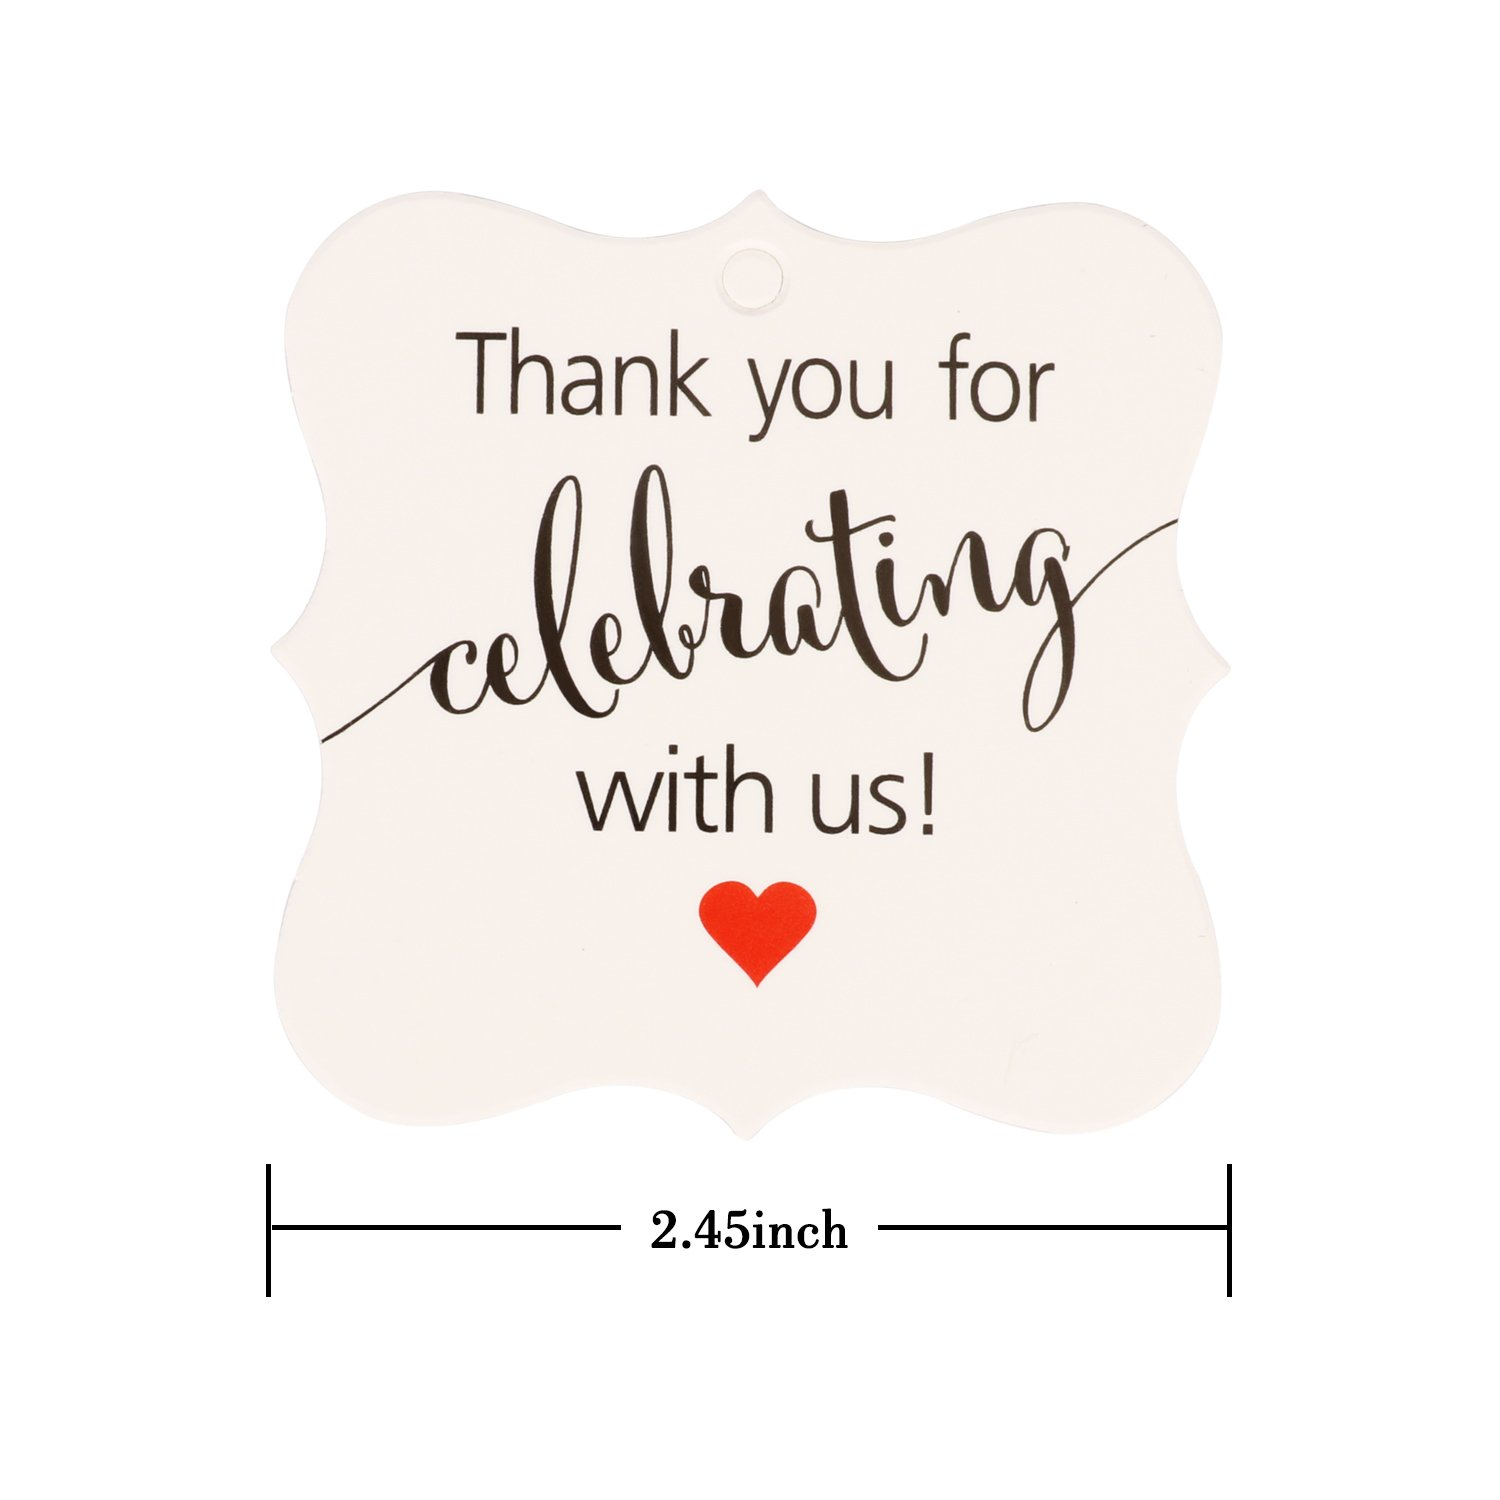 Aprince Paper Favor Gift Tags 100 PCS Thank You Tags Wedding Favor Gift Tags Thank You for Celebrating with Us White Square Tags with 20m Natural Jute Twine Perfect for Bridal Baby Shower Anniversary by Aprince (Image #1)